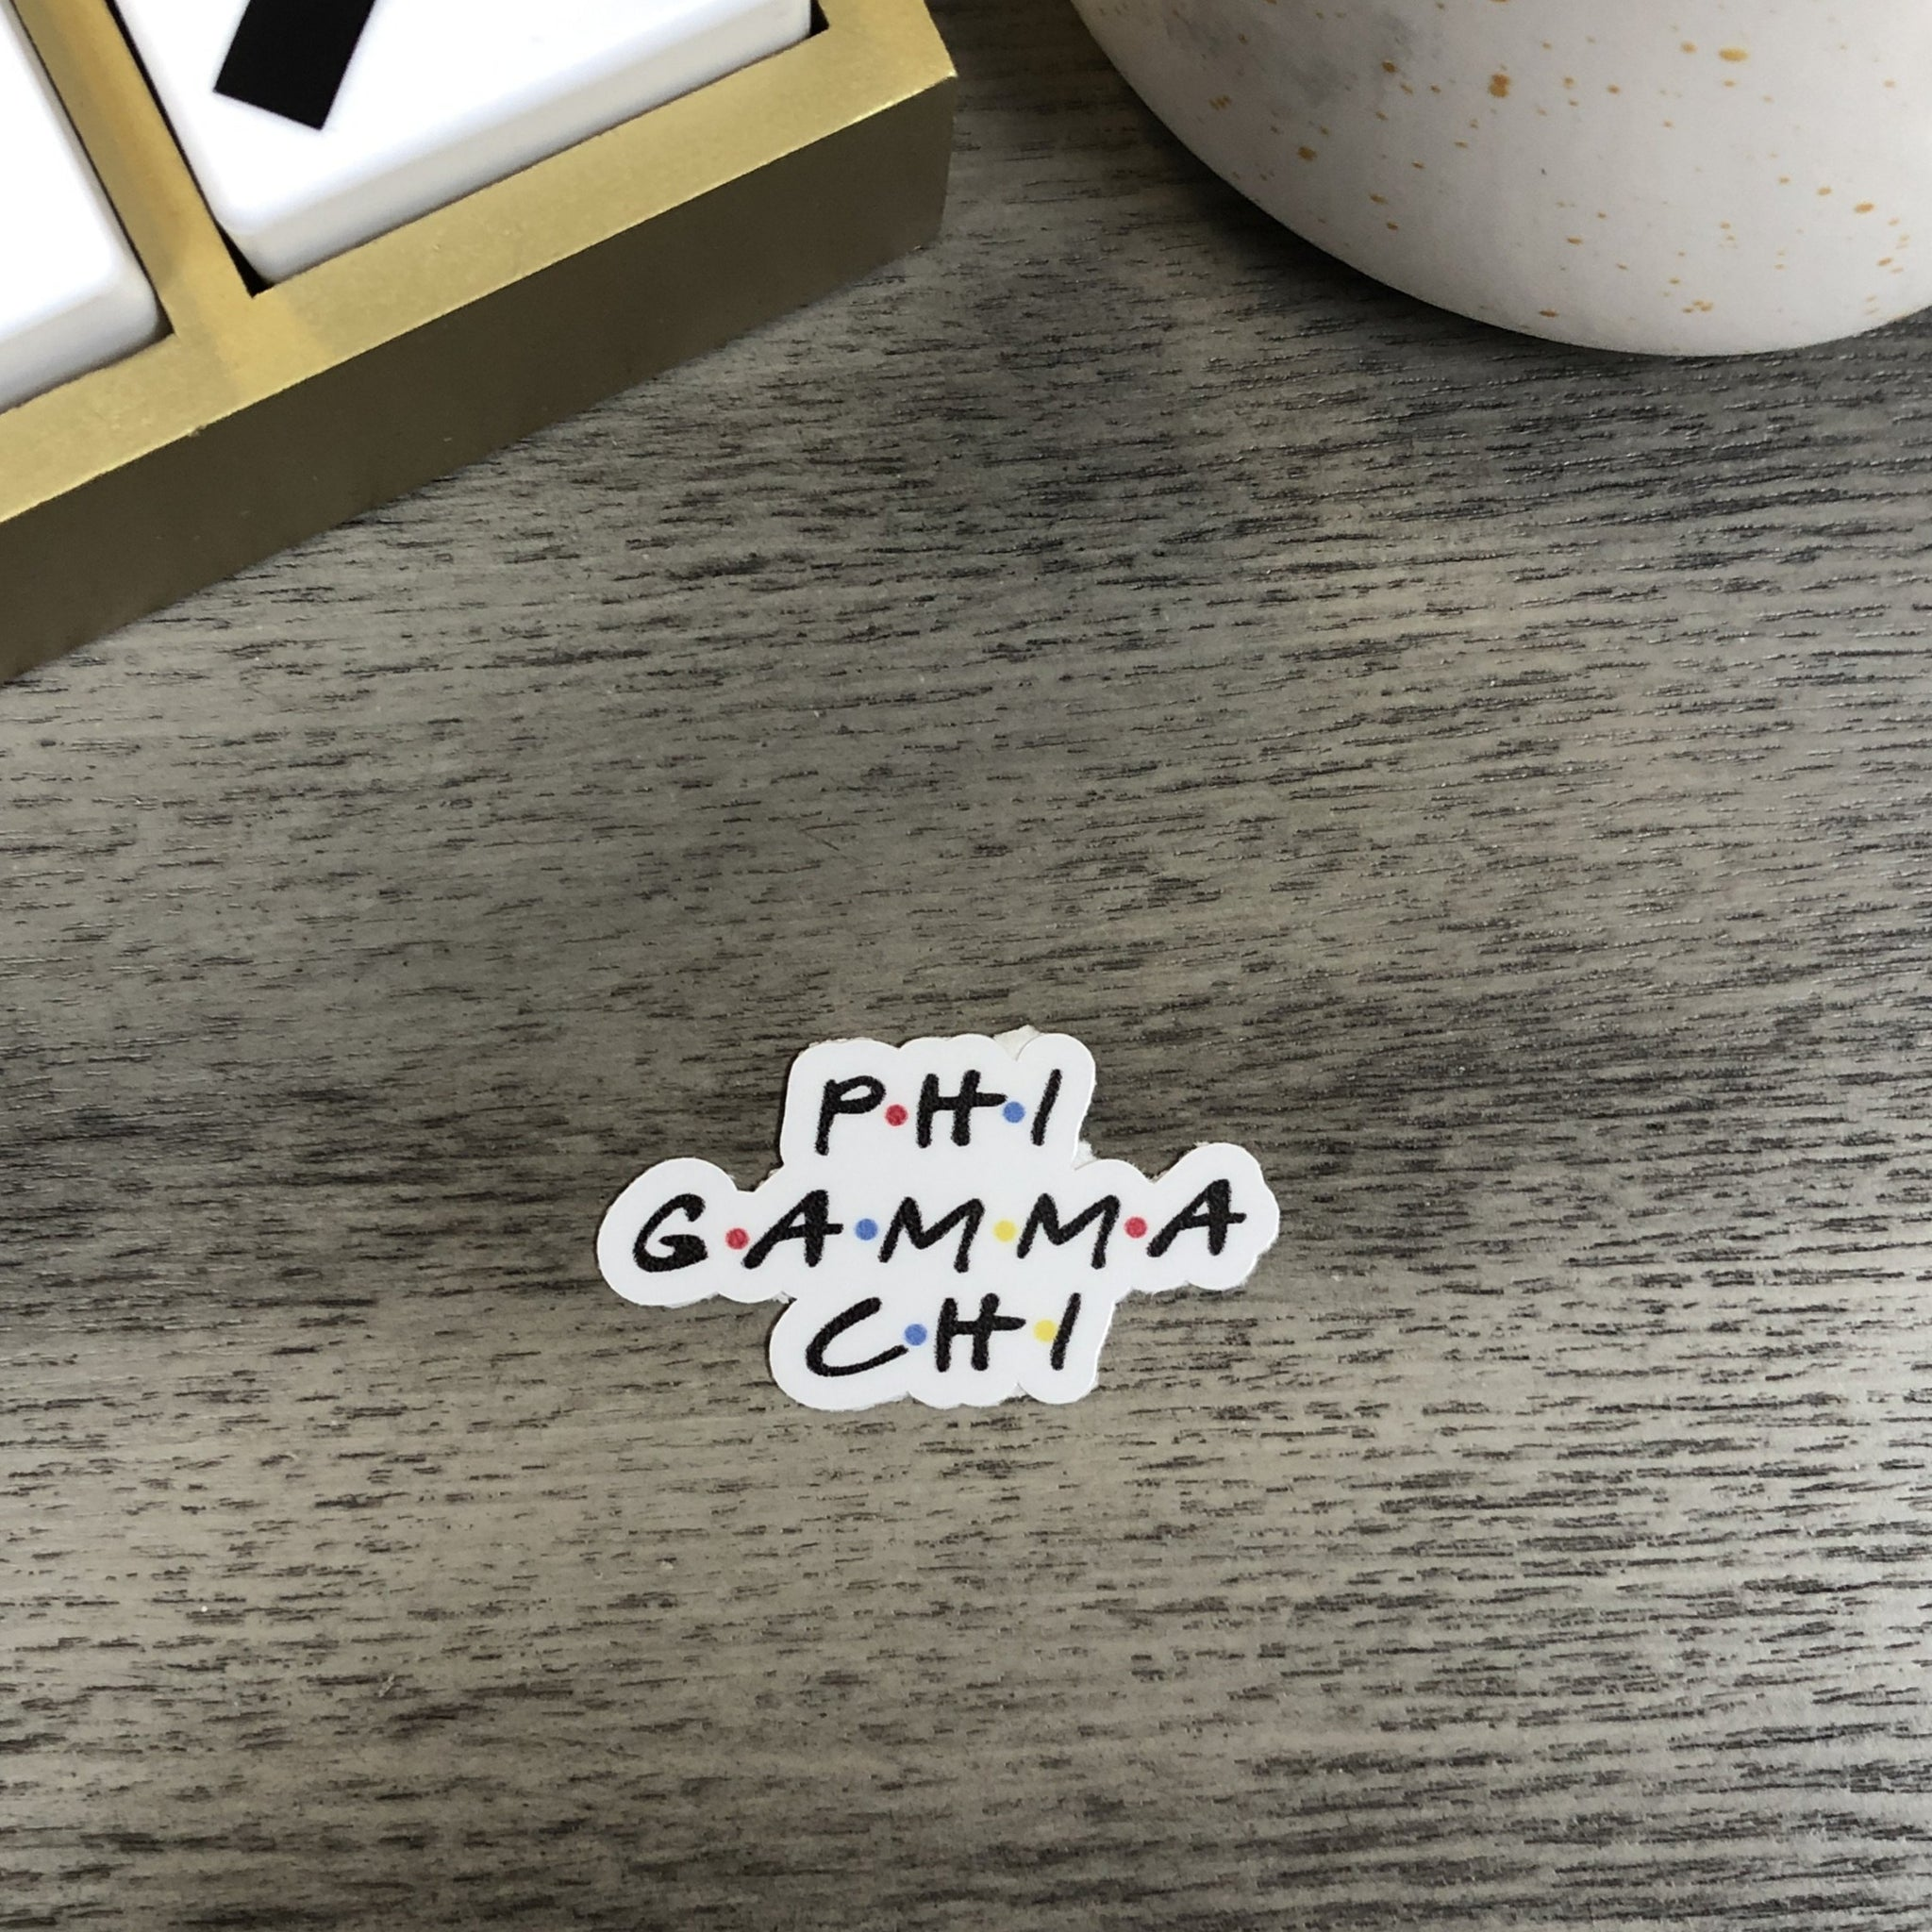 Phi Gamma Chi - Friends Sticker